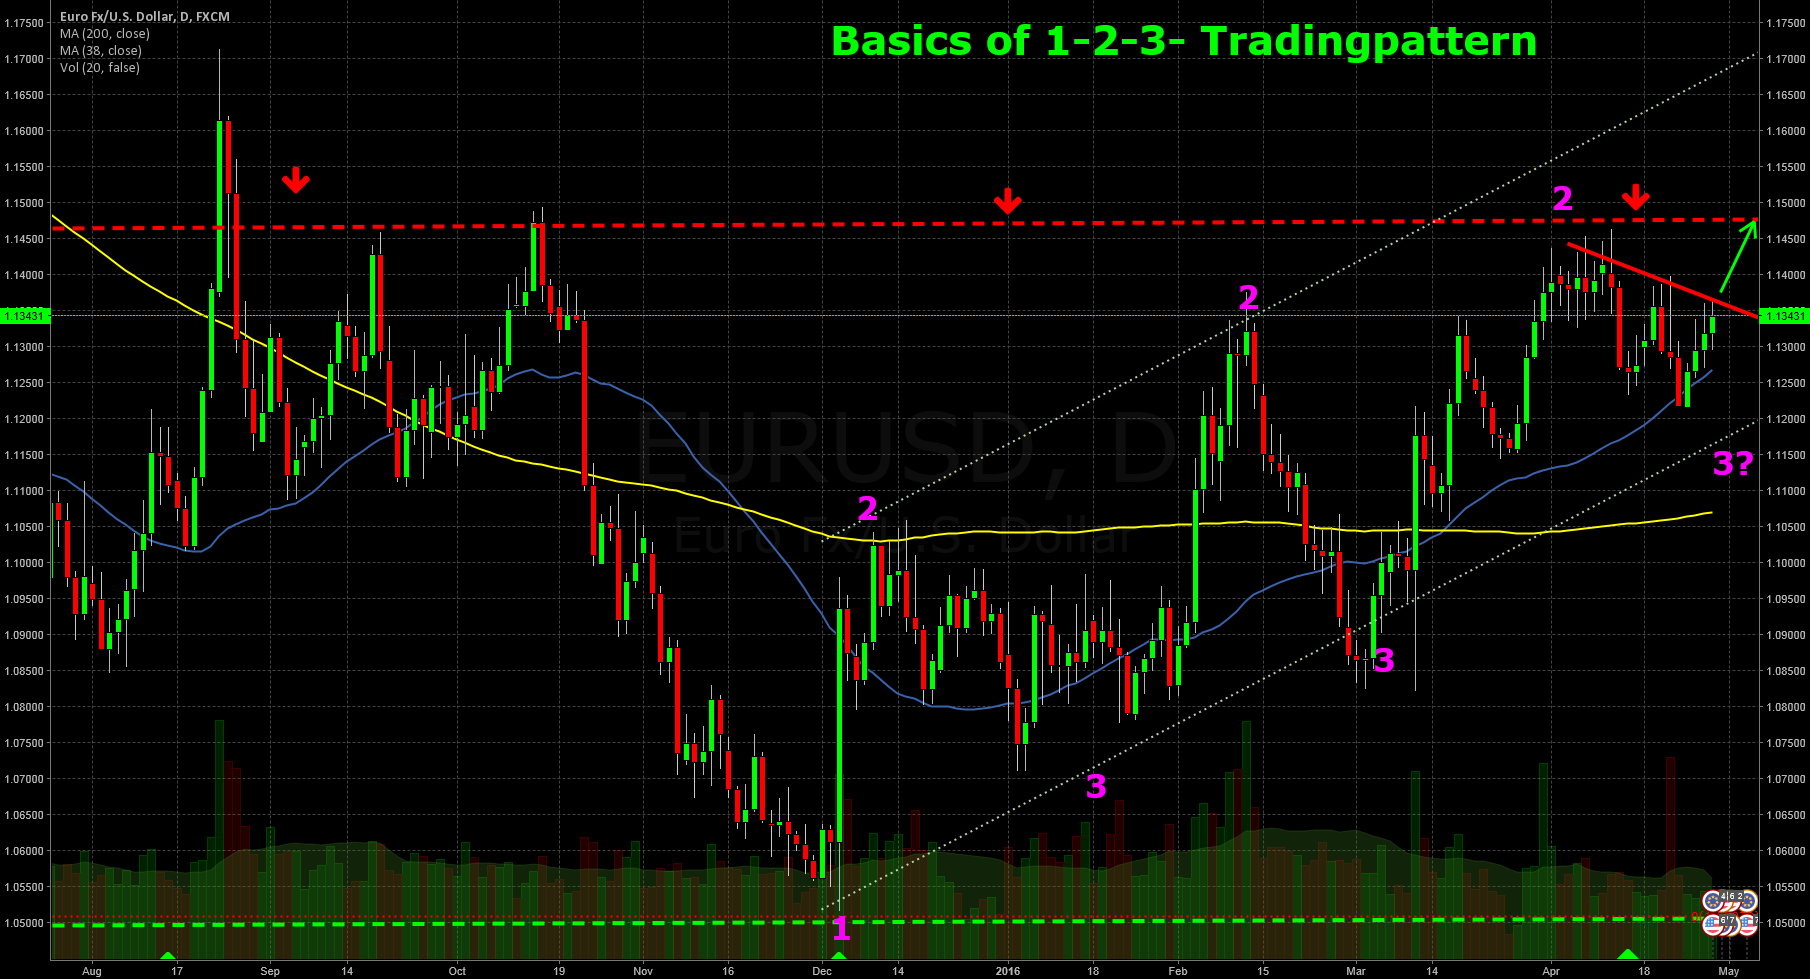 Introduction into 1-2-3 Trading Pattern